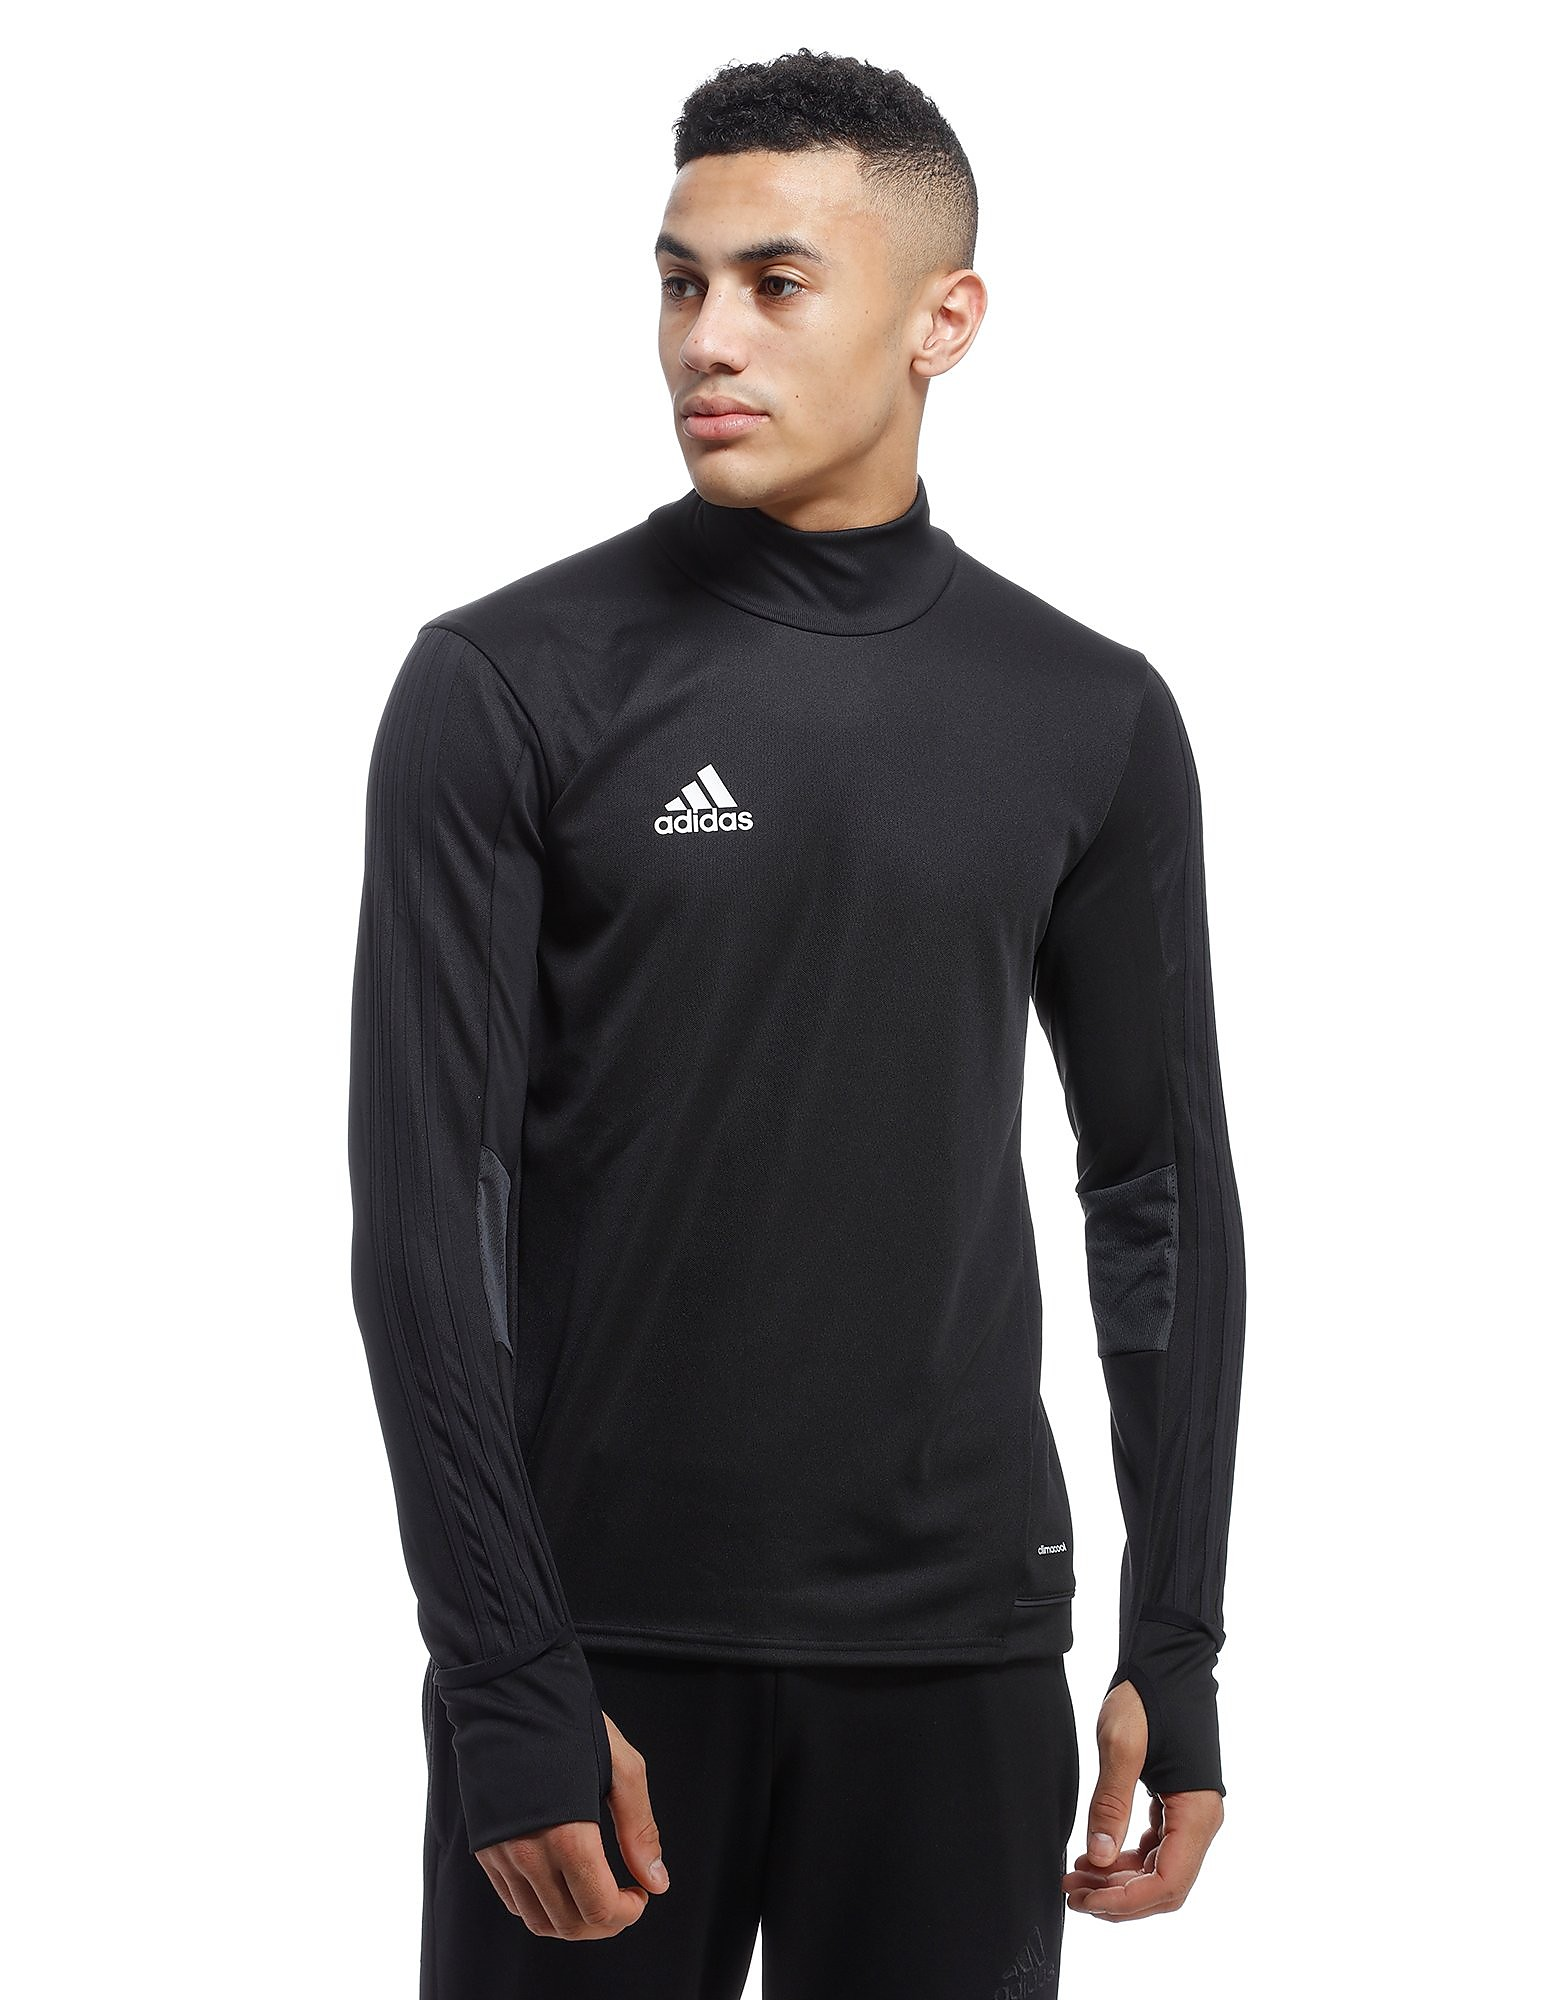 adidas Tiro 17 Training Top